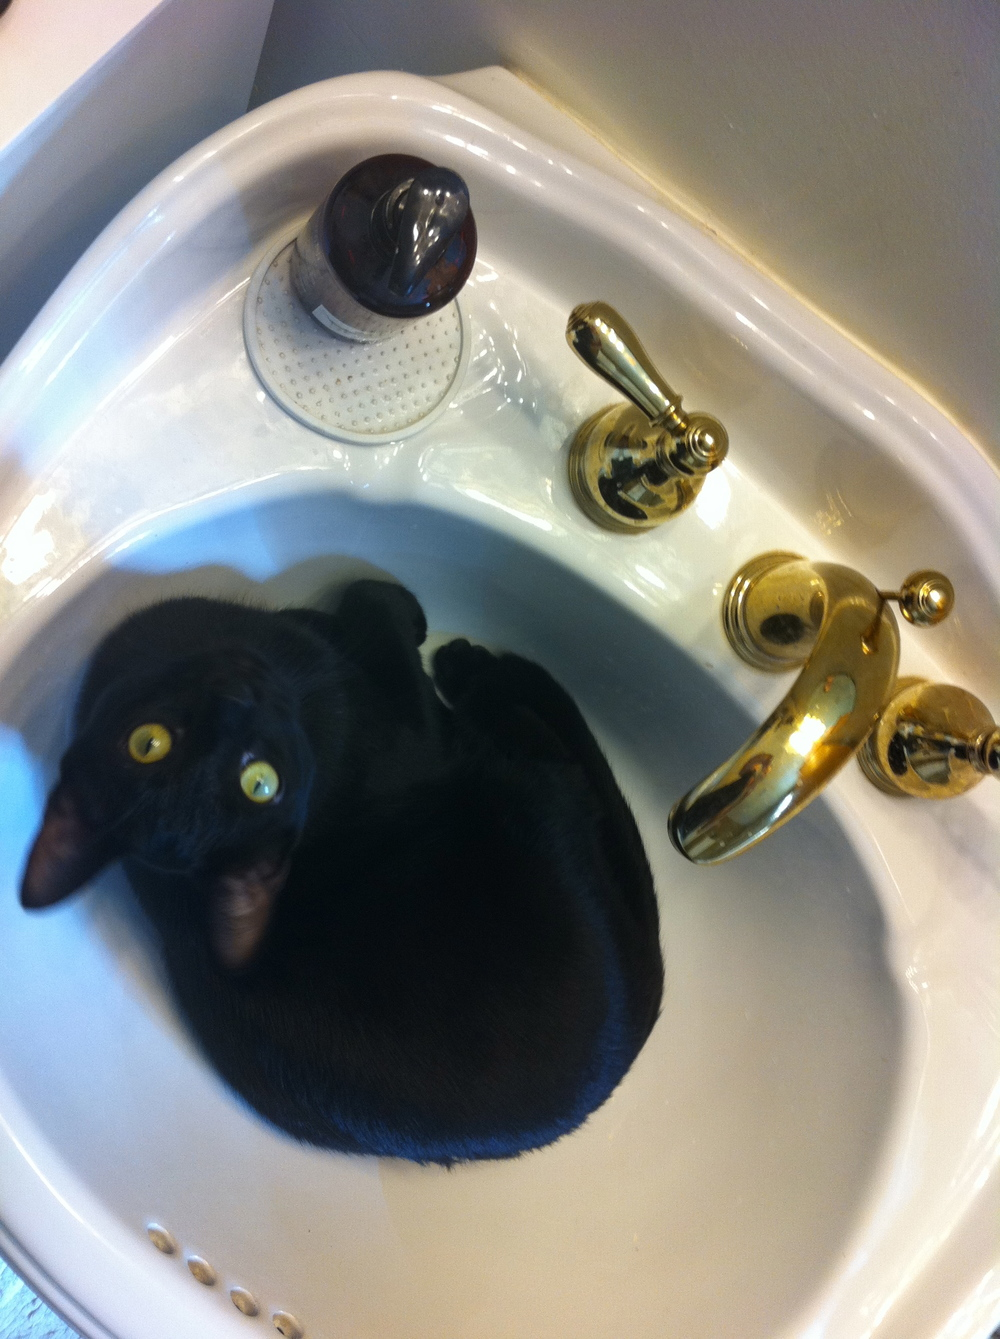 bodhi in sink.jpg